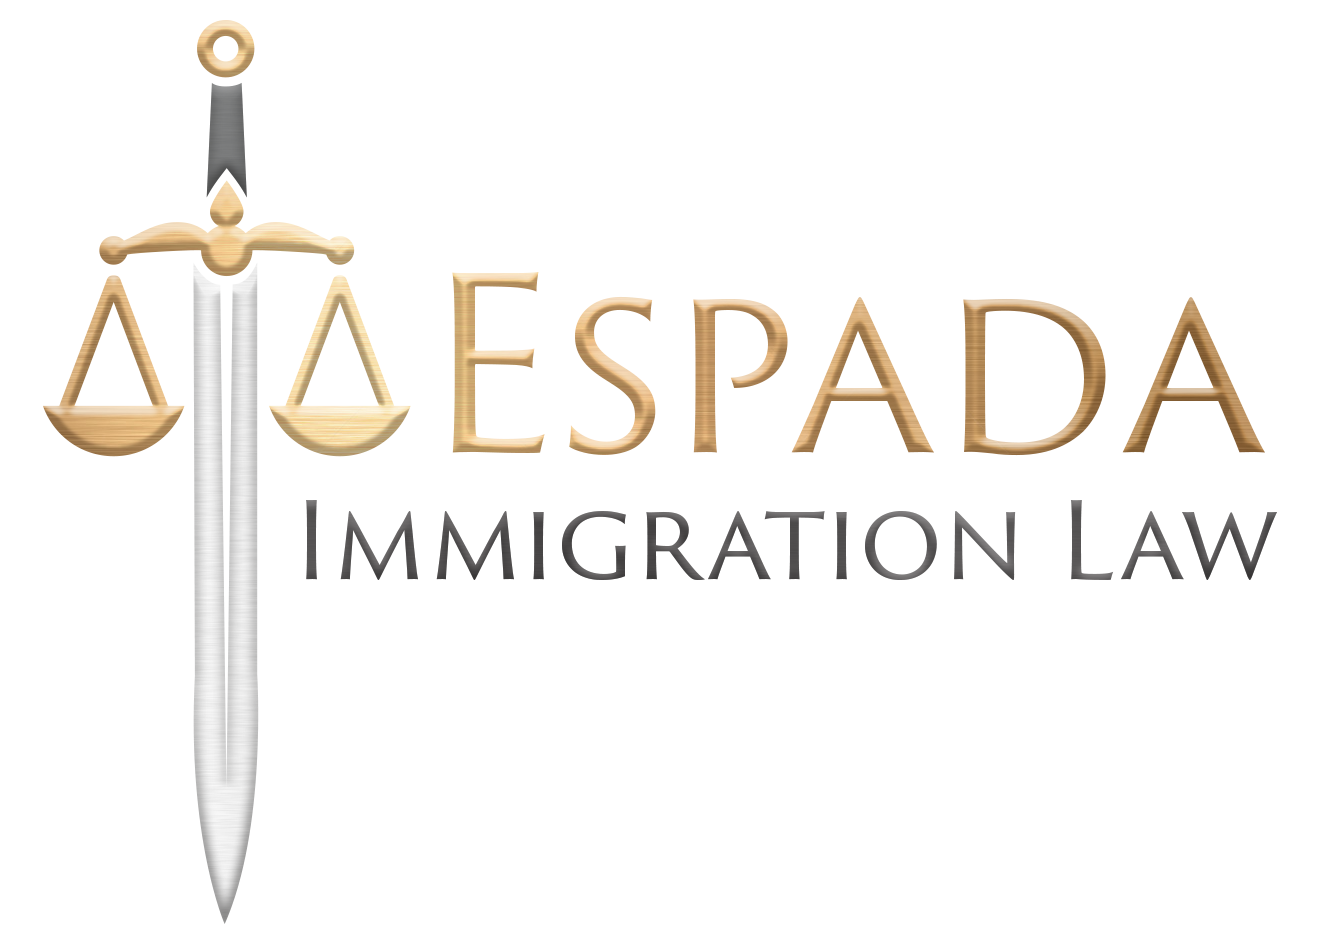 Espada Immigration Law